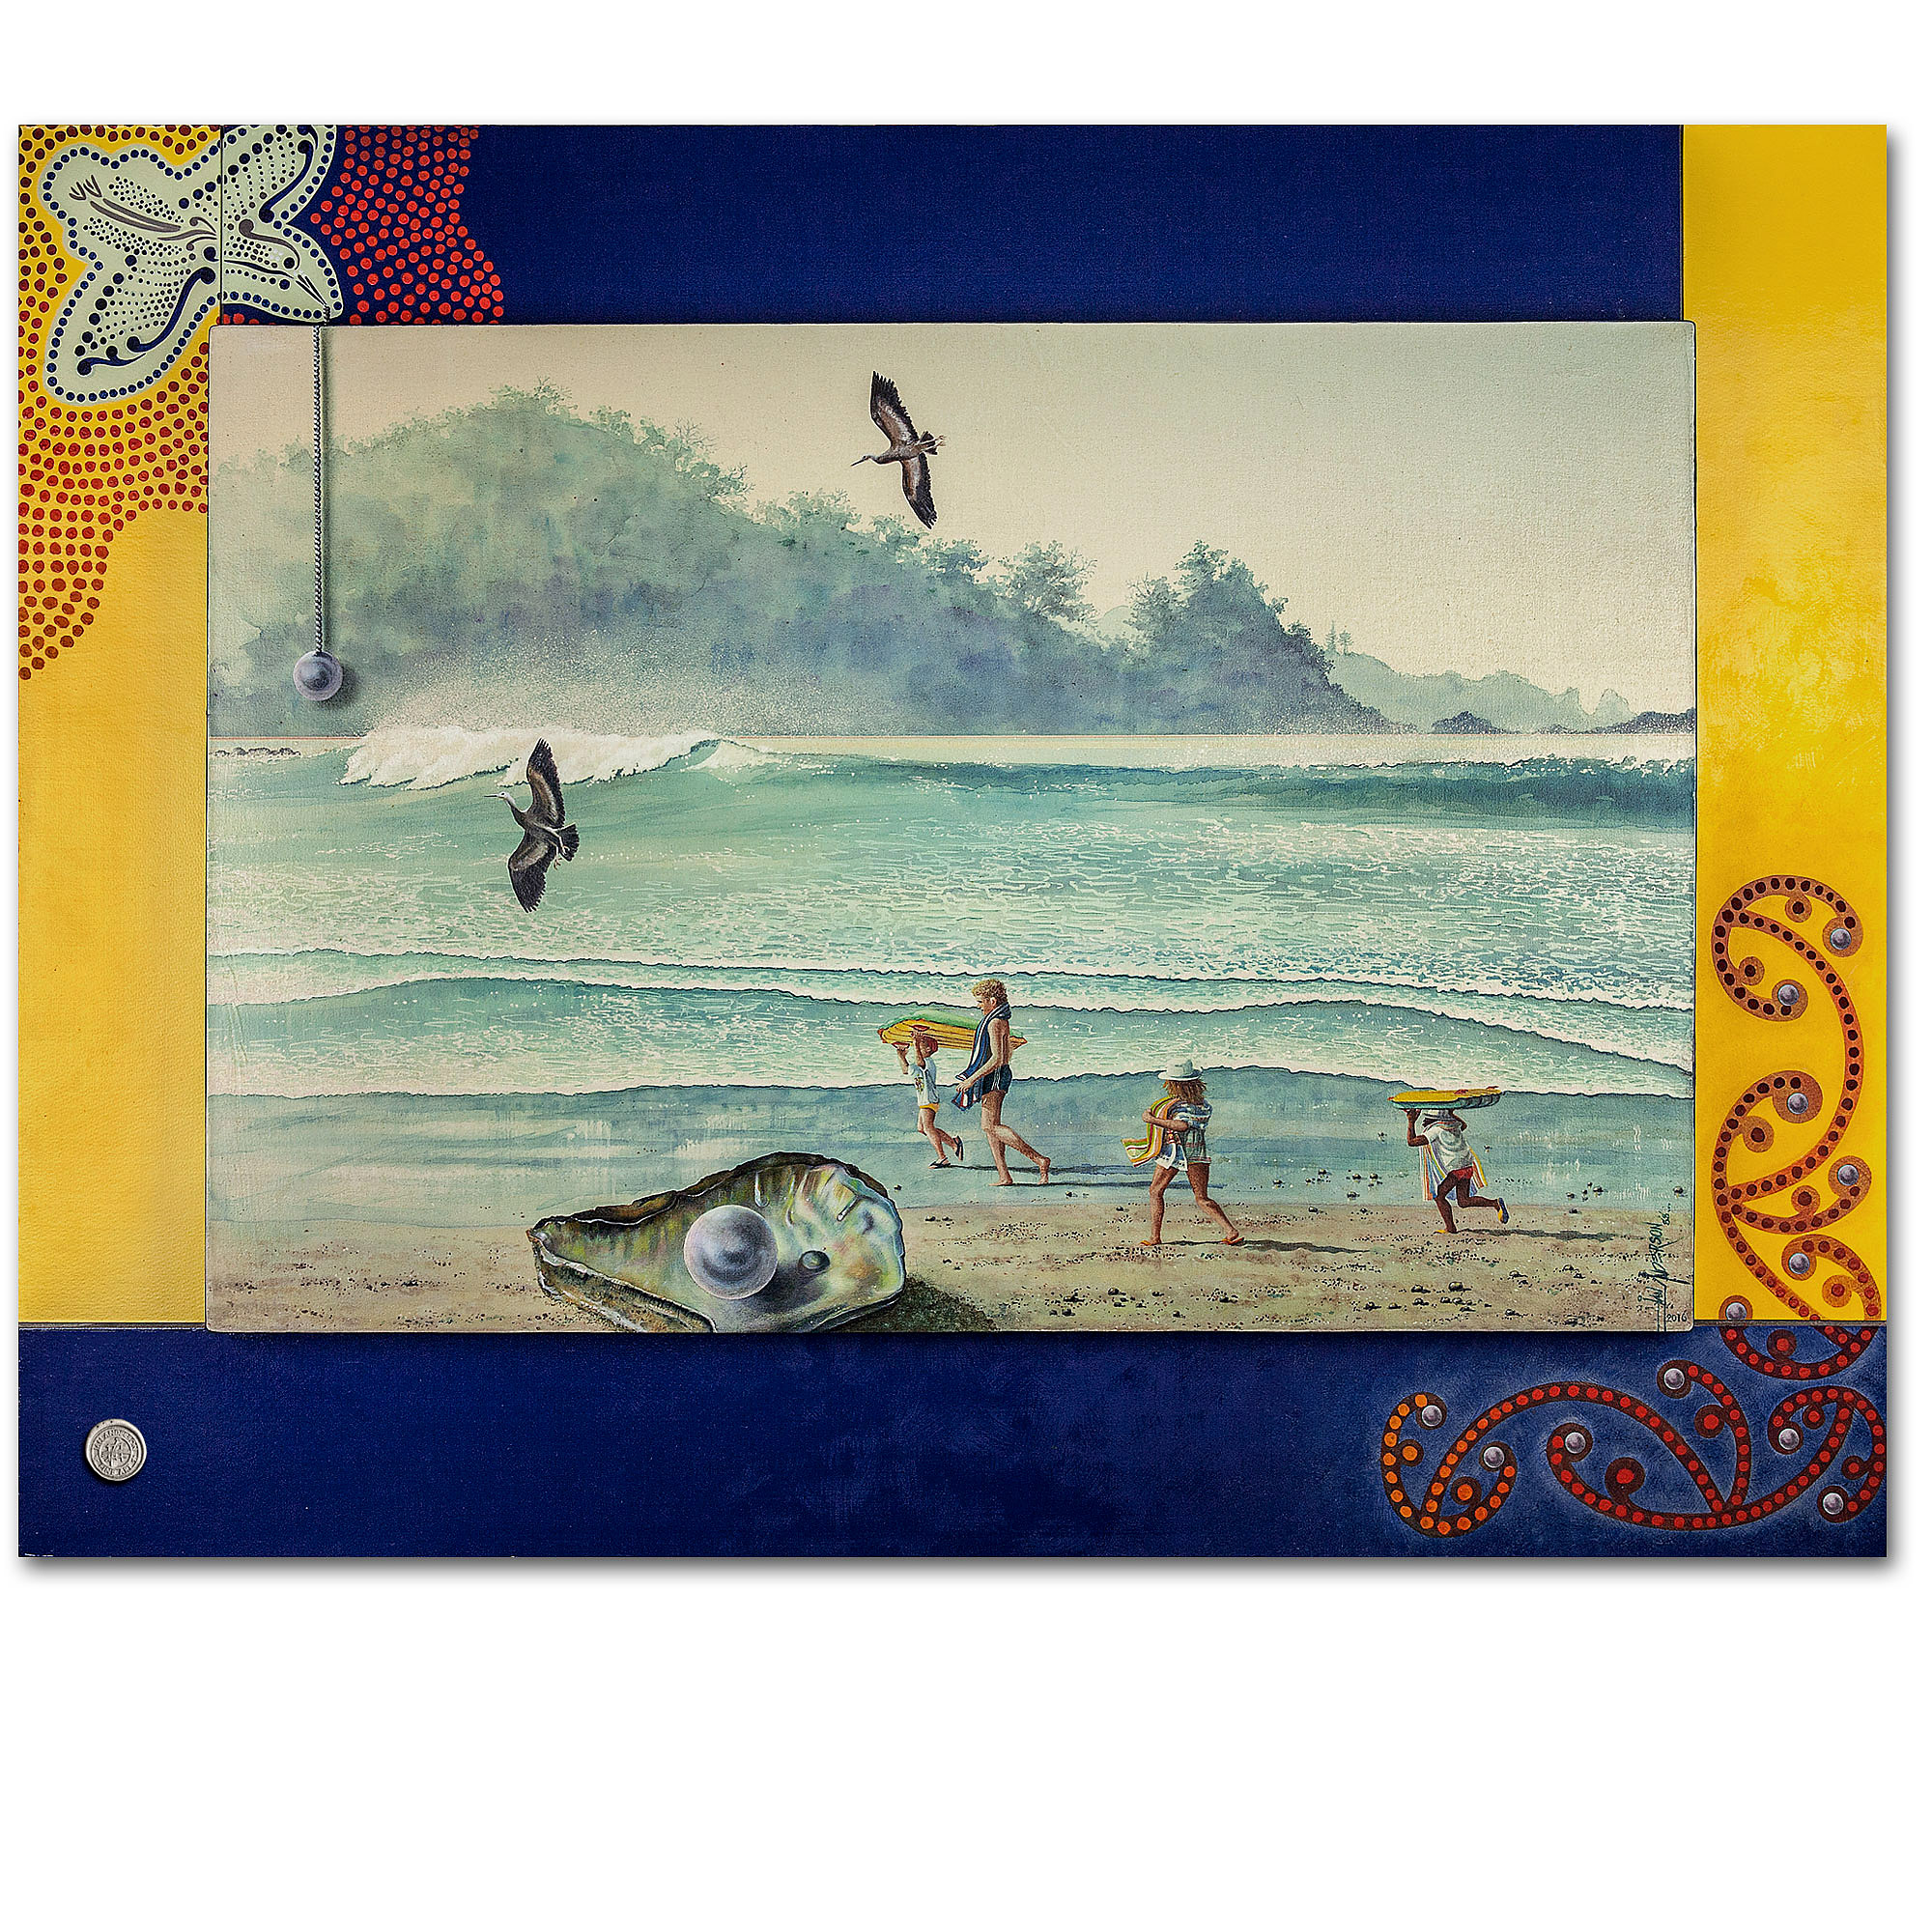 A journey of dreams. An oil painting of children and wildlife at the beach.